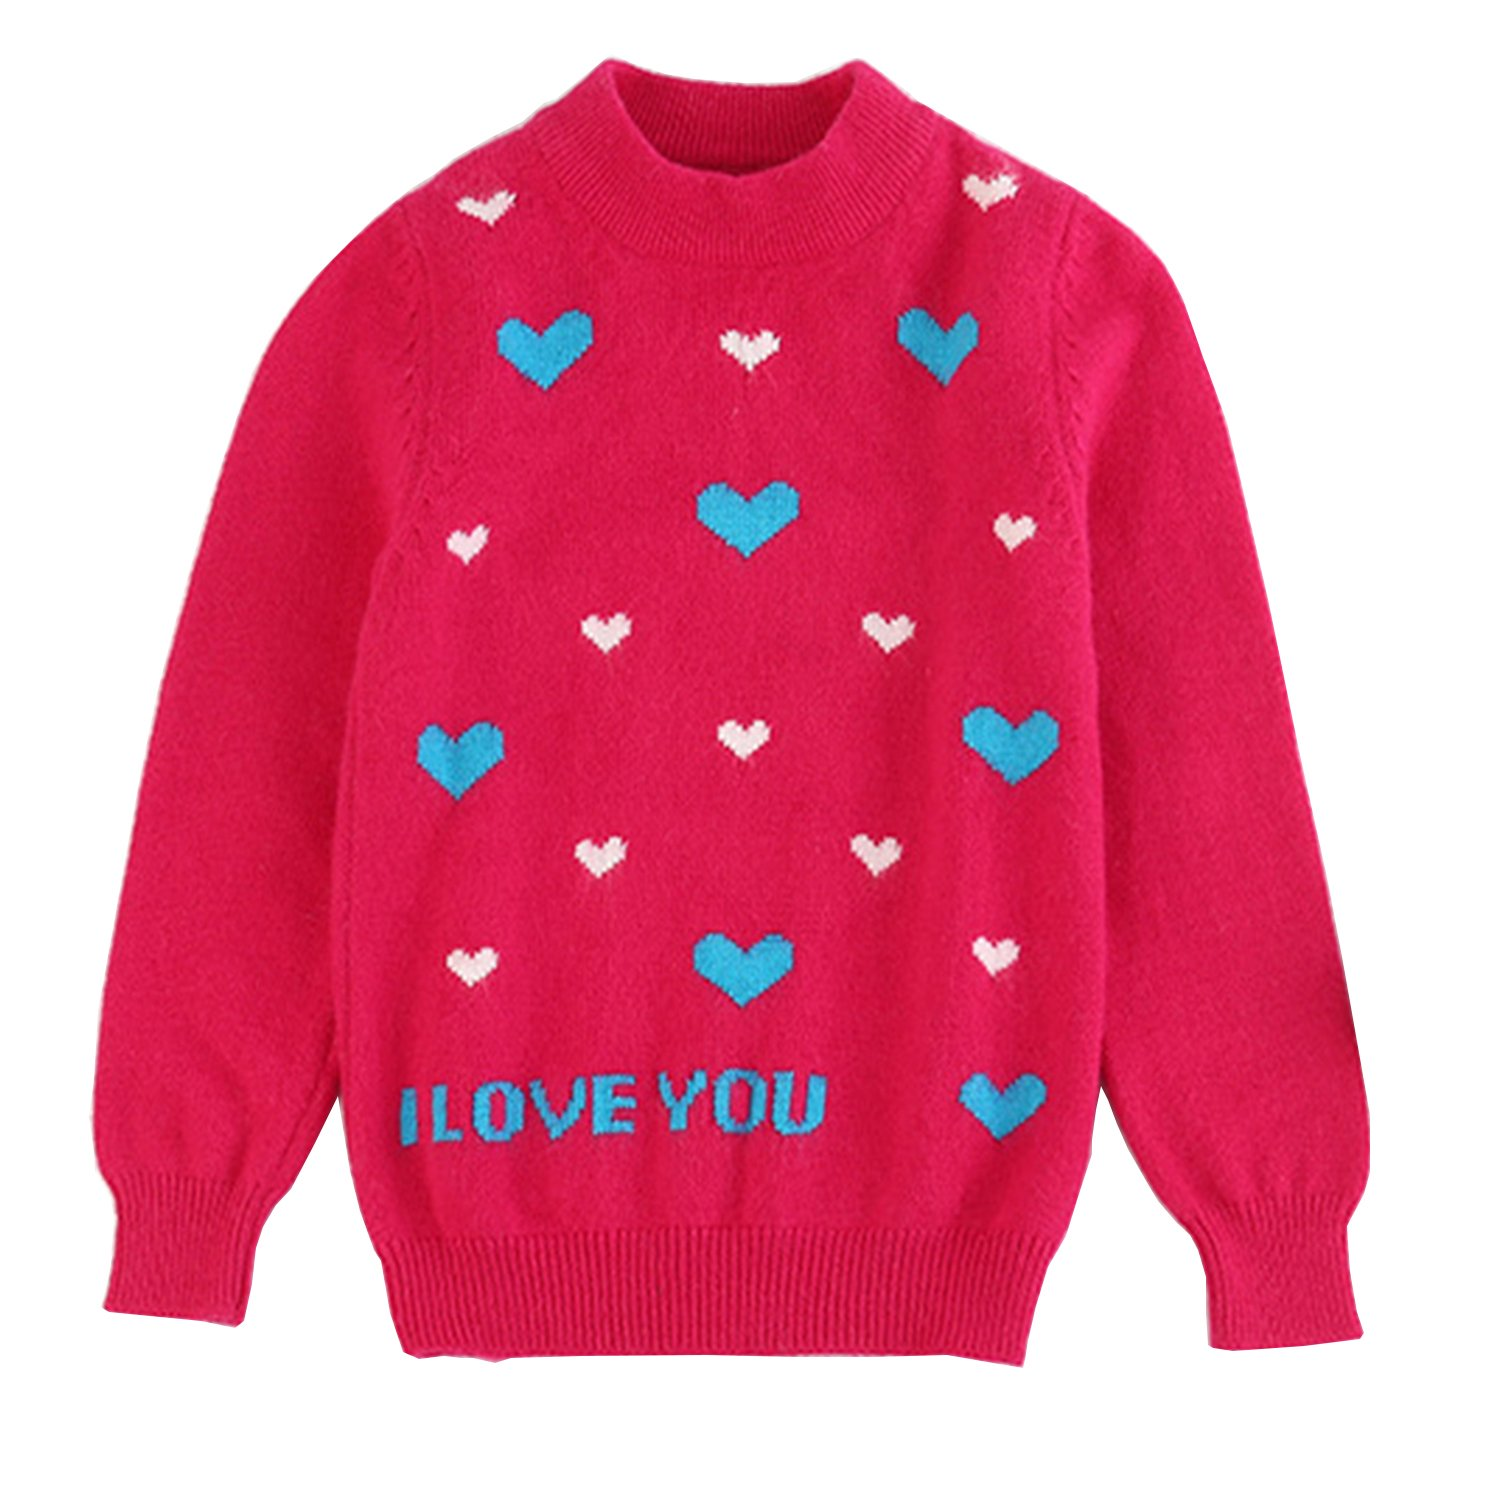 Euno Girls Cashmere Sweater Lovable Sweater Pullover Knitwear Knit Sweater